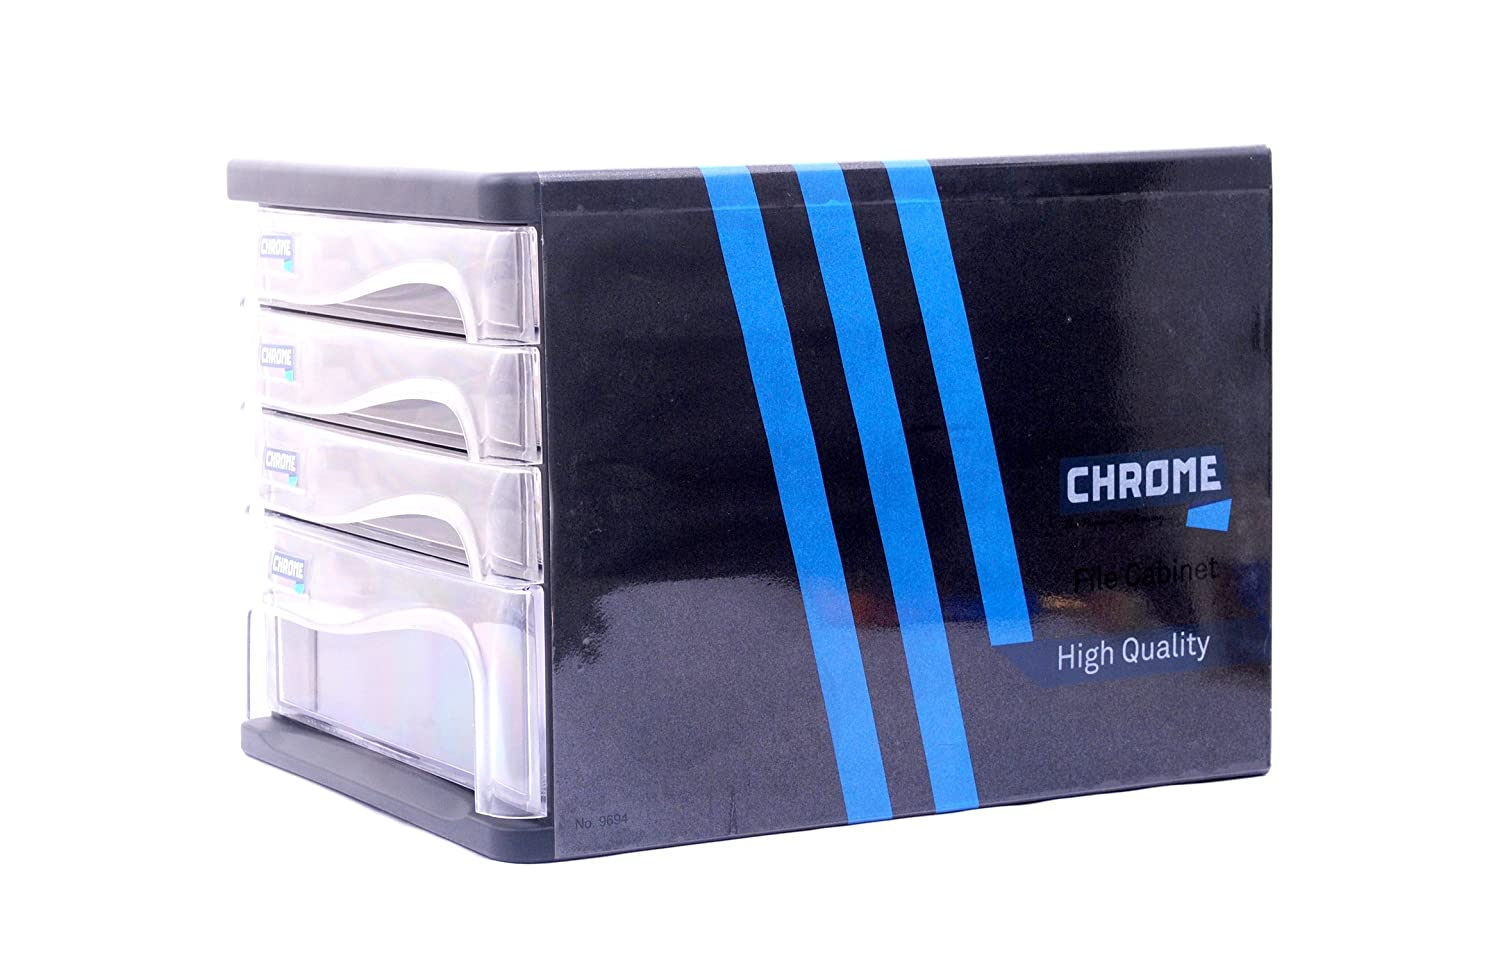 Chrome 9694 - Plastic File Cabinet 4 Drawers: Amazon.in: Home ...